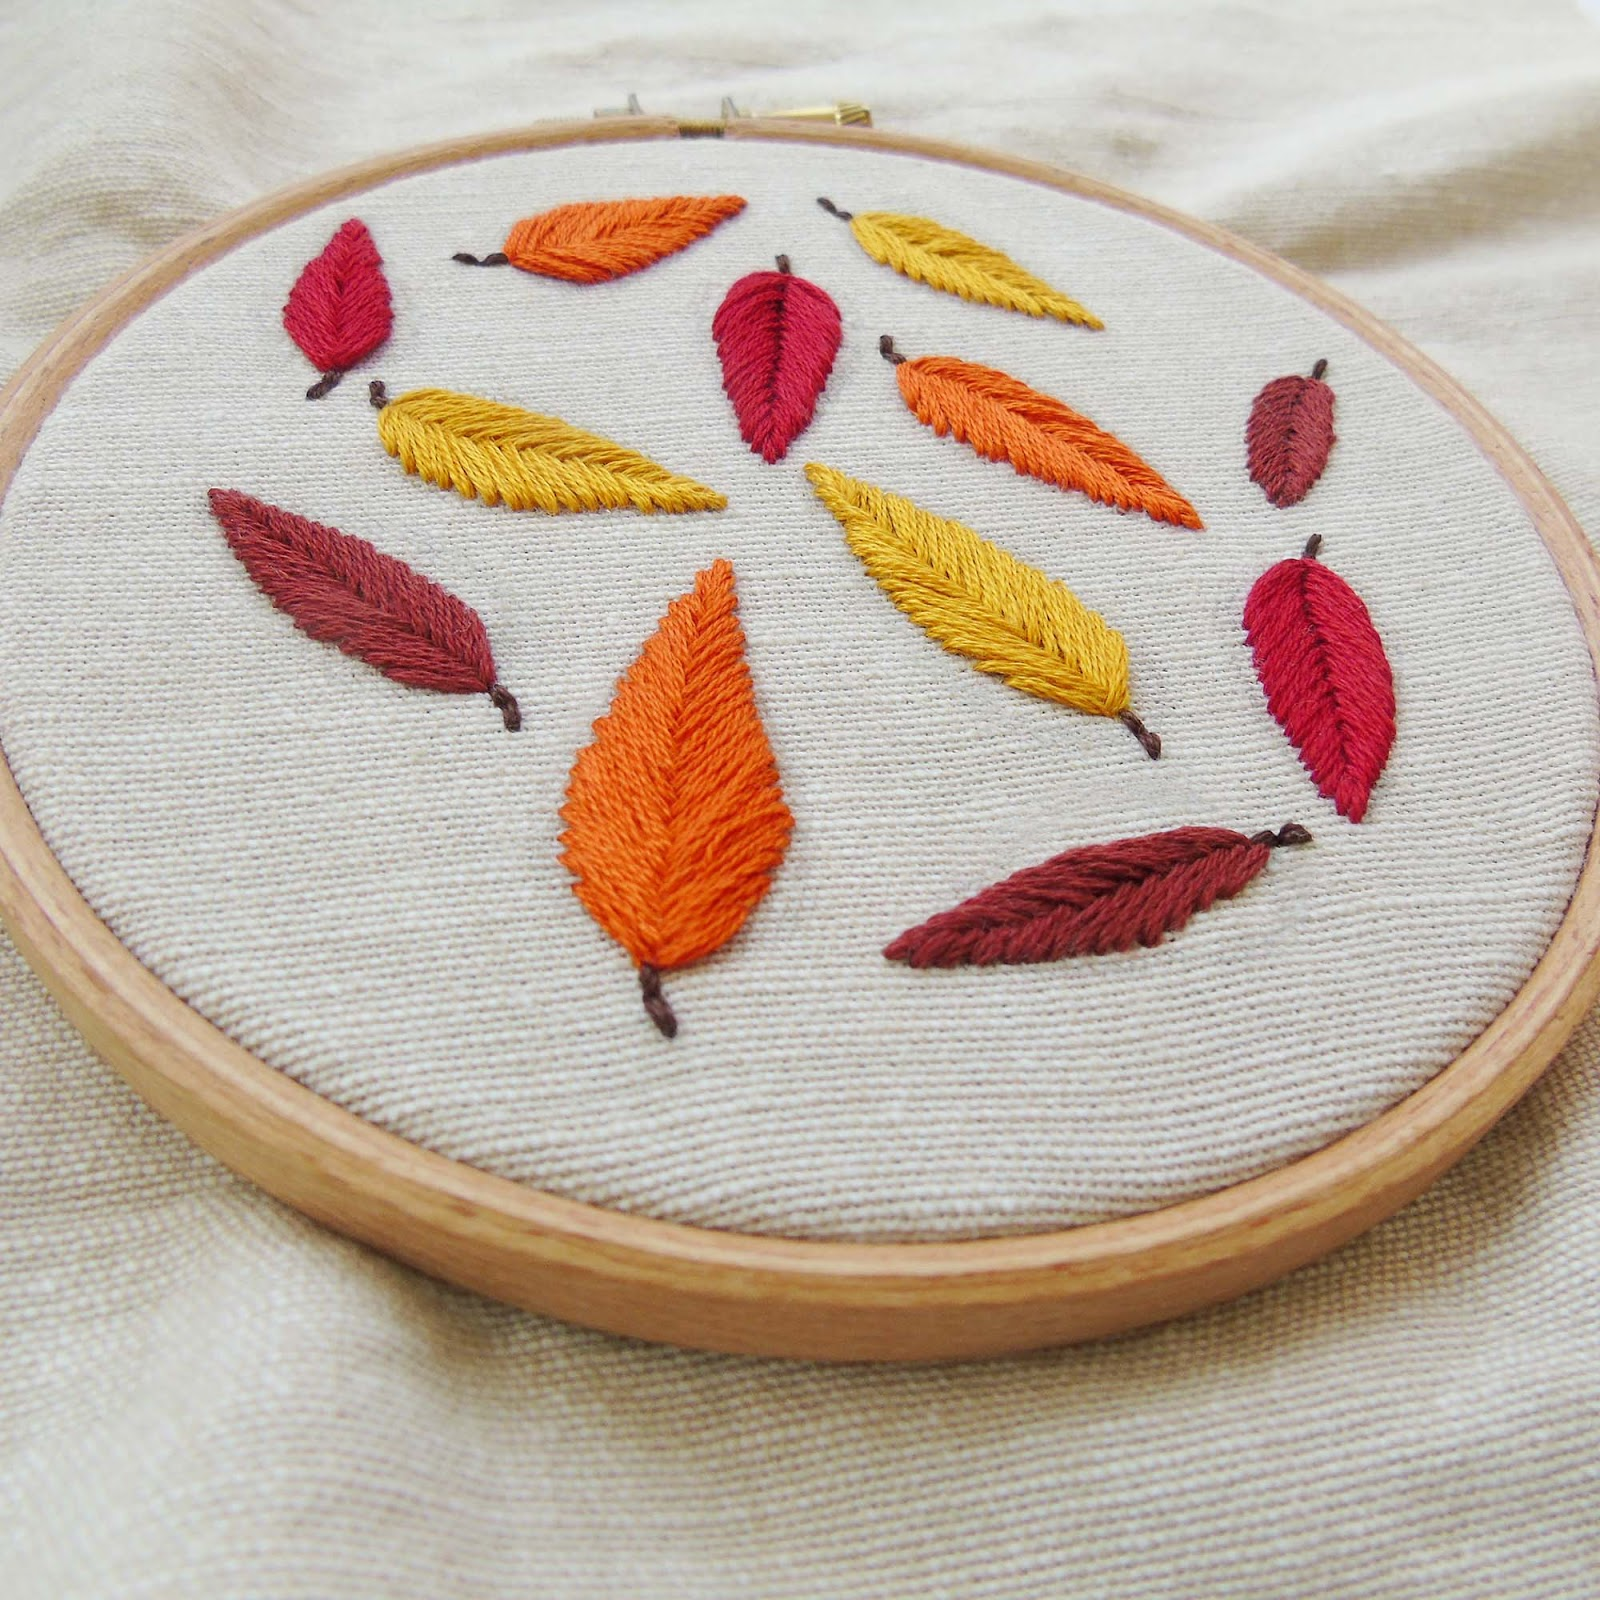 Royces Hub Embroidery Stitches For Leaves Fishbone Sti